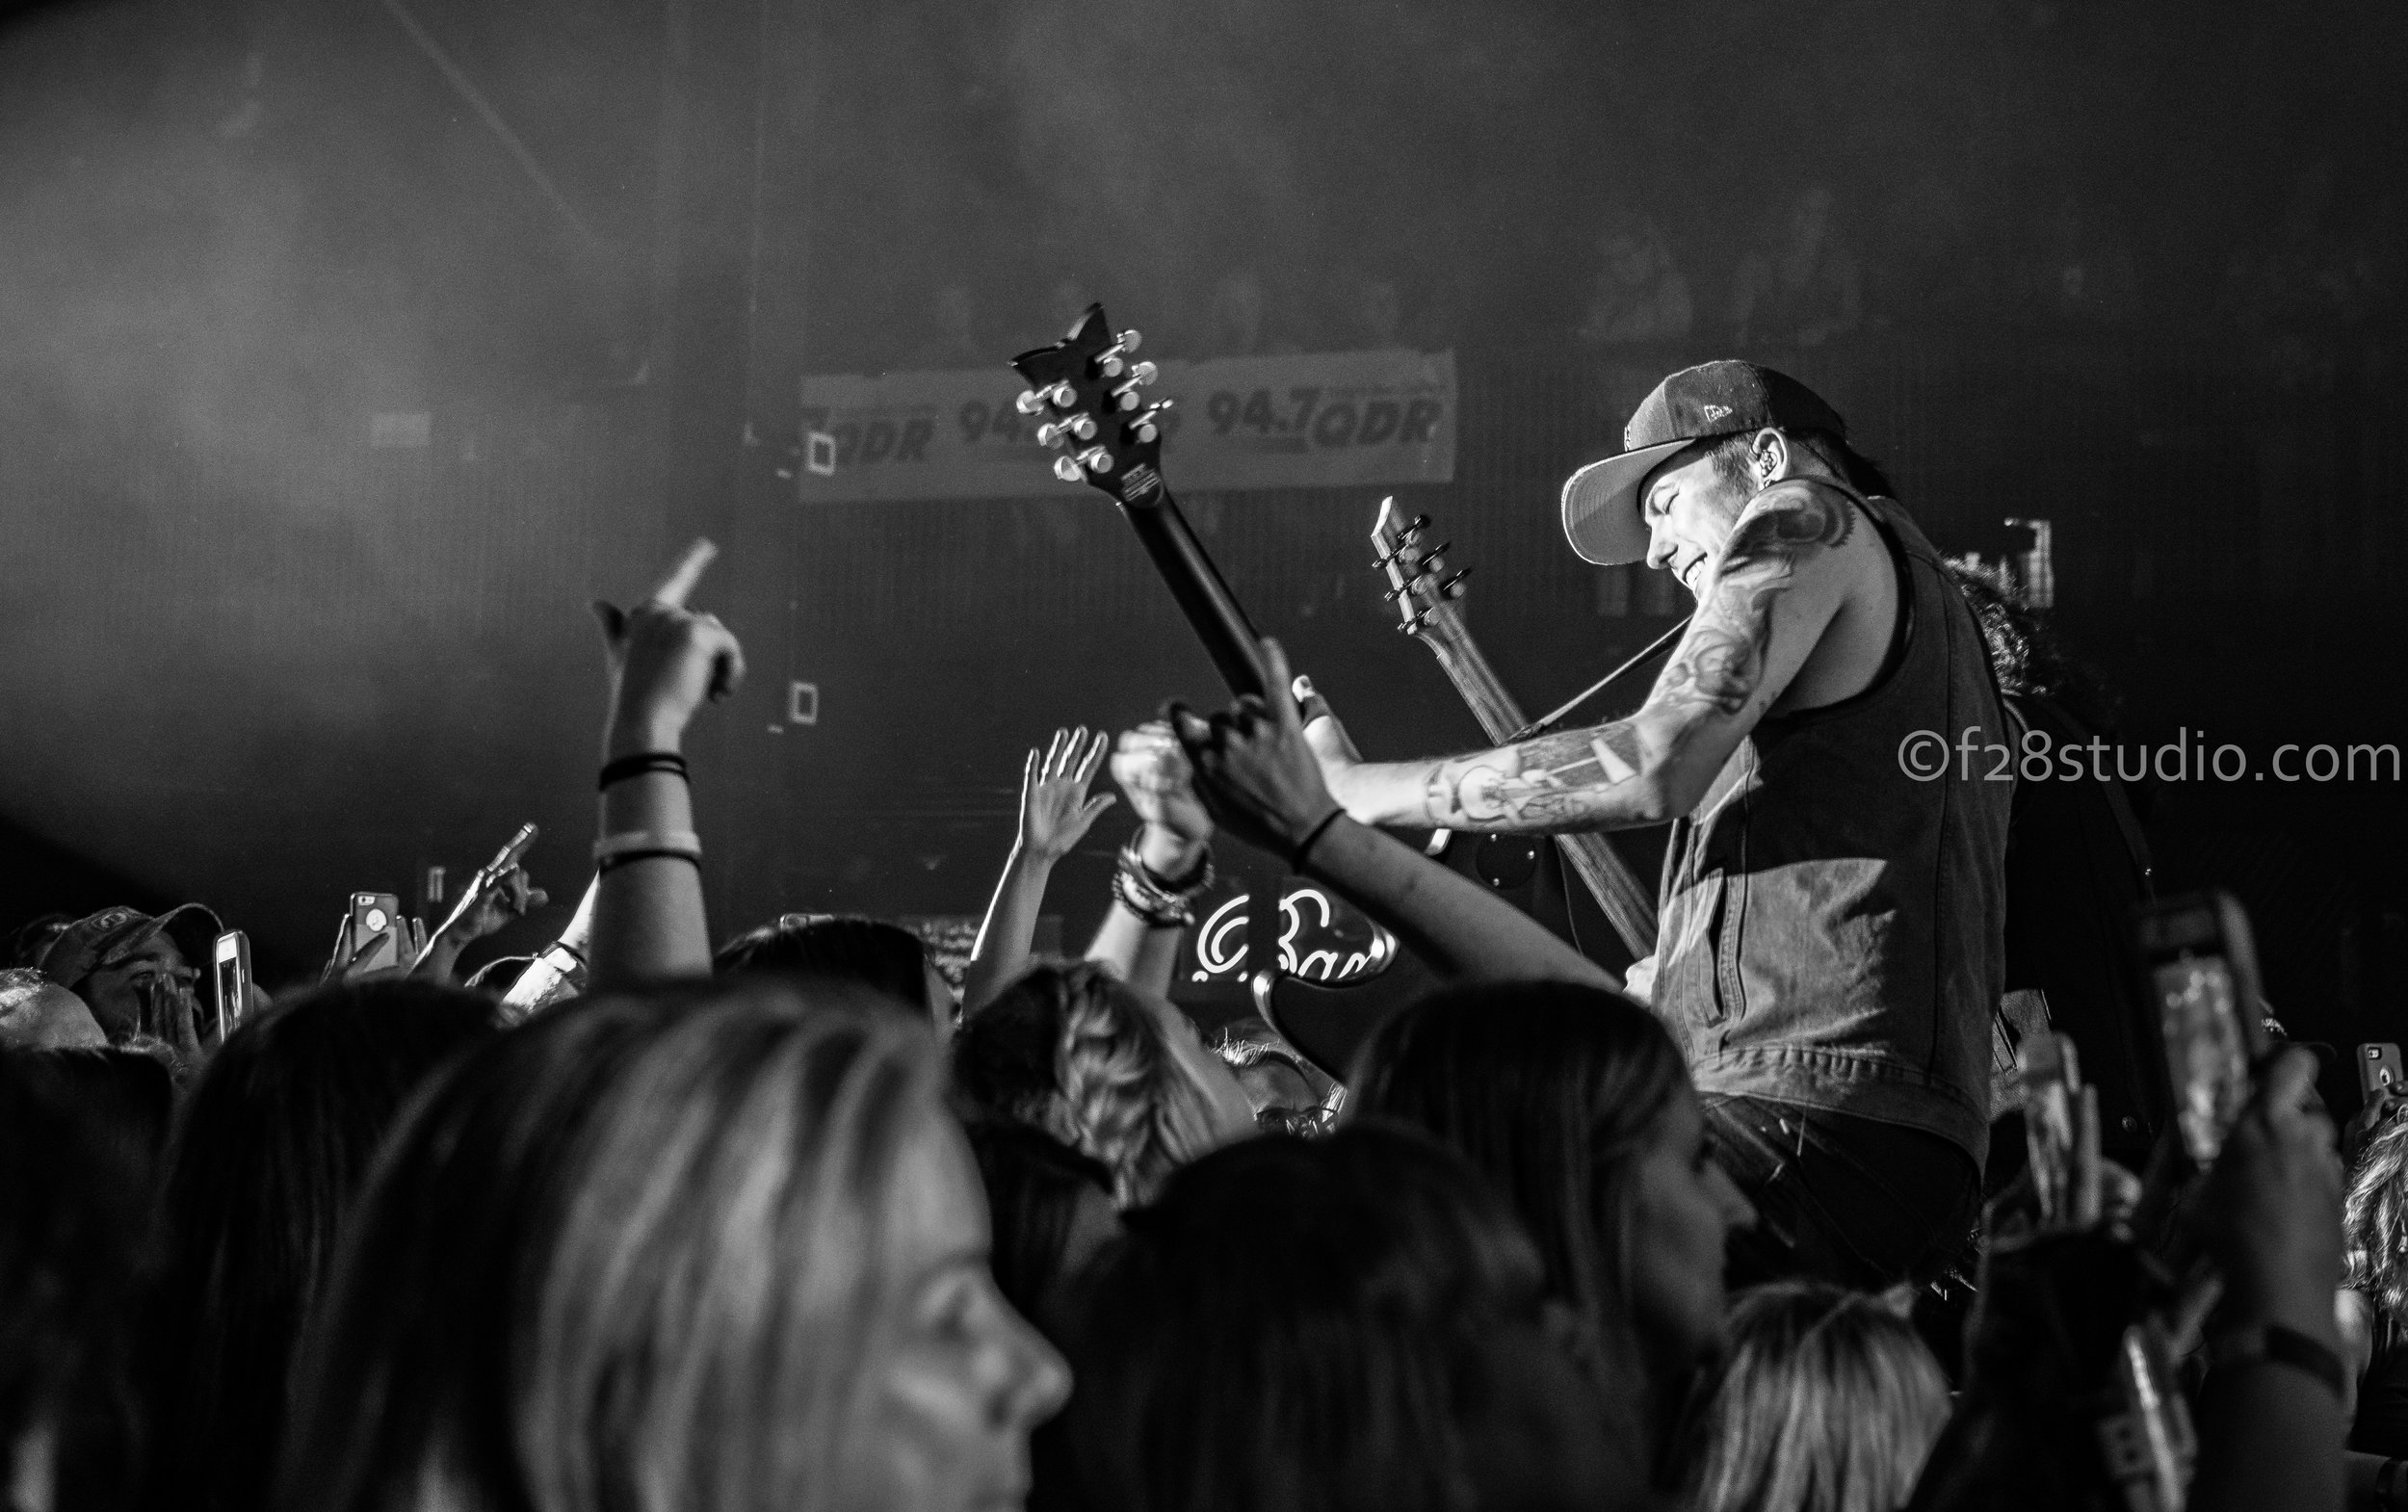 Chase Rice band mates ripping solos while in the crowd.